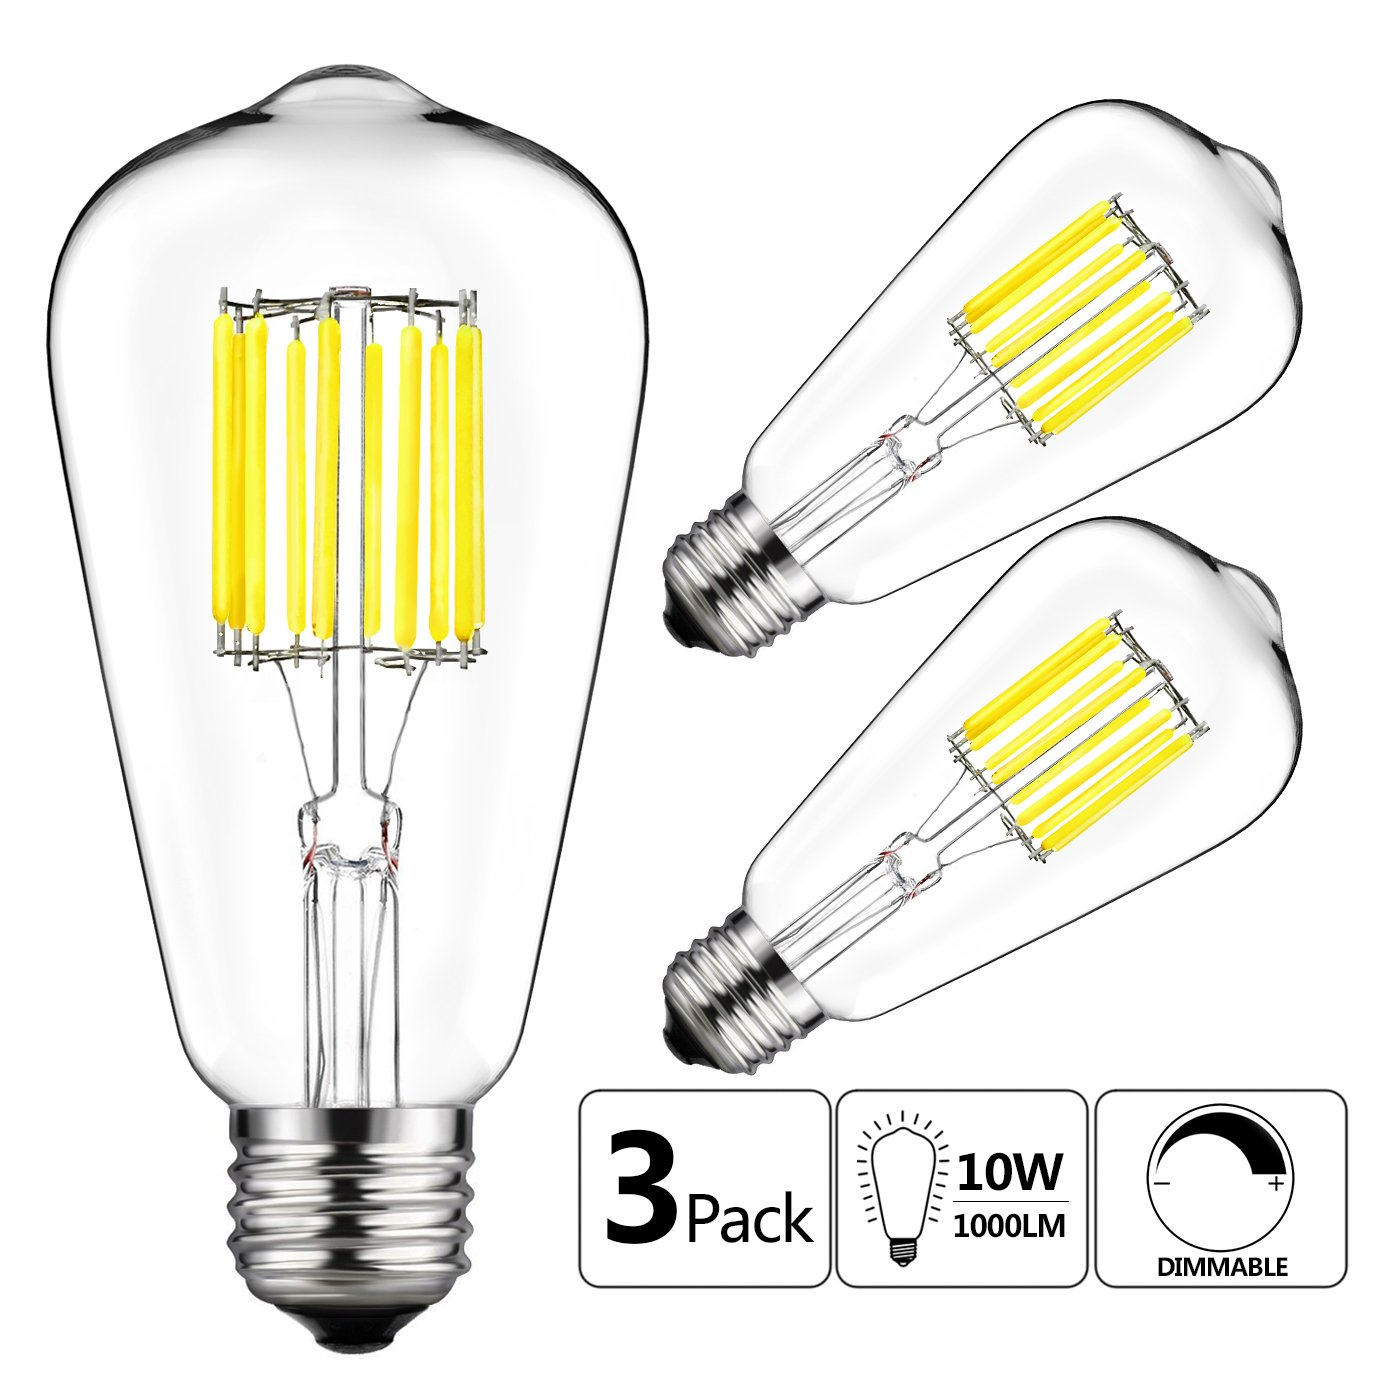 4-Pack 12W LED A19 Dimmable Filament Light Bulbs Lustaled A60 LED Clear Glass Vintage Edison Style Lights Daylight Medium E26 Base 120W Incandescent Replacement for Ceiling Fan Pendant Lighting